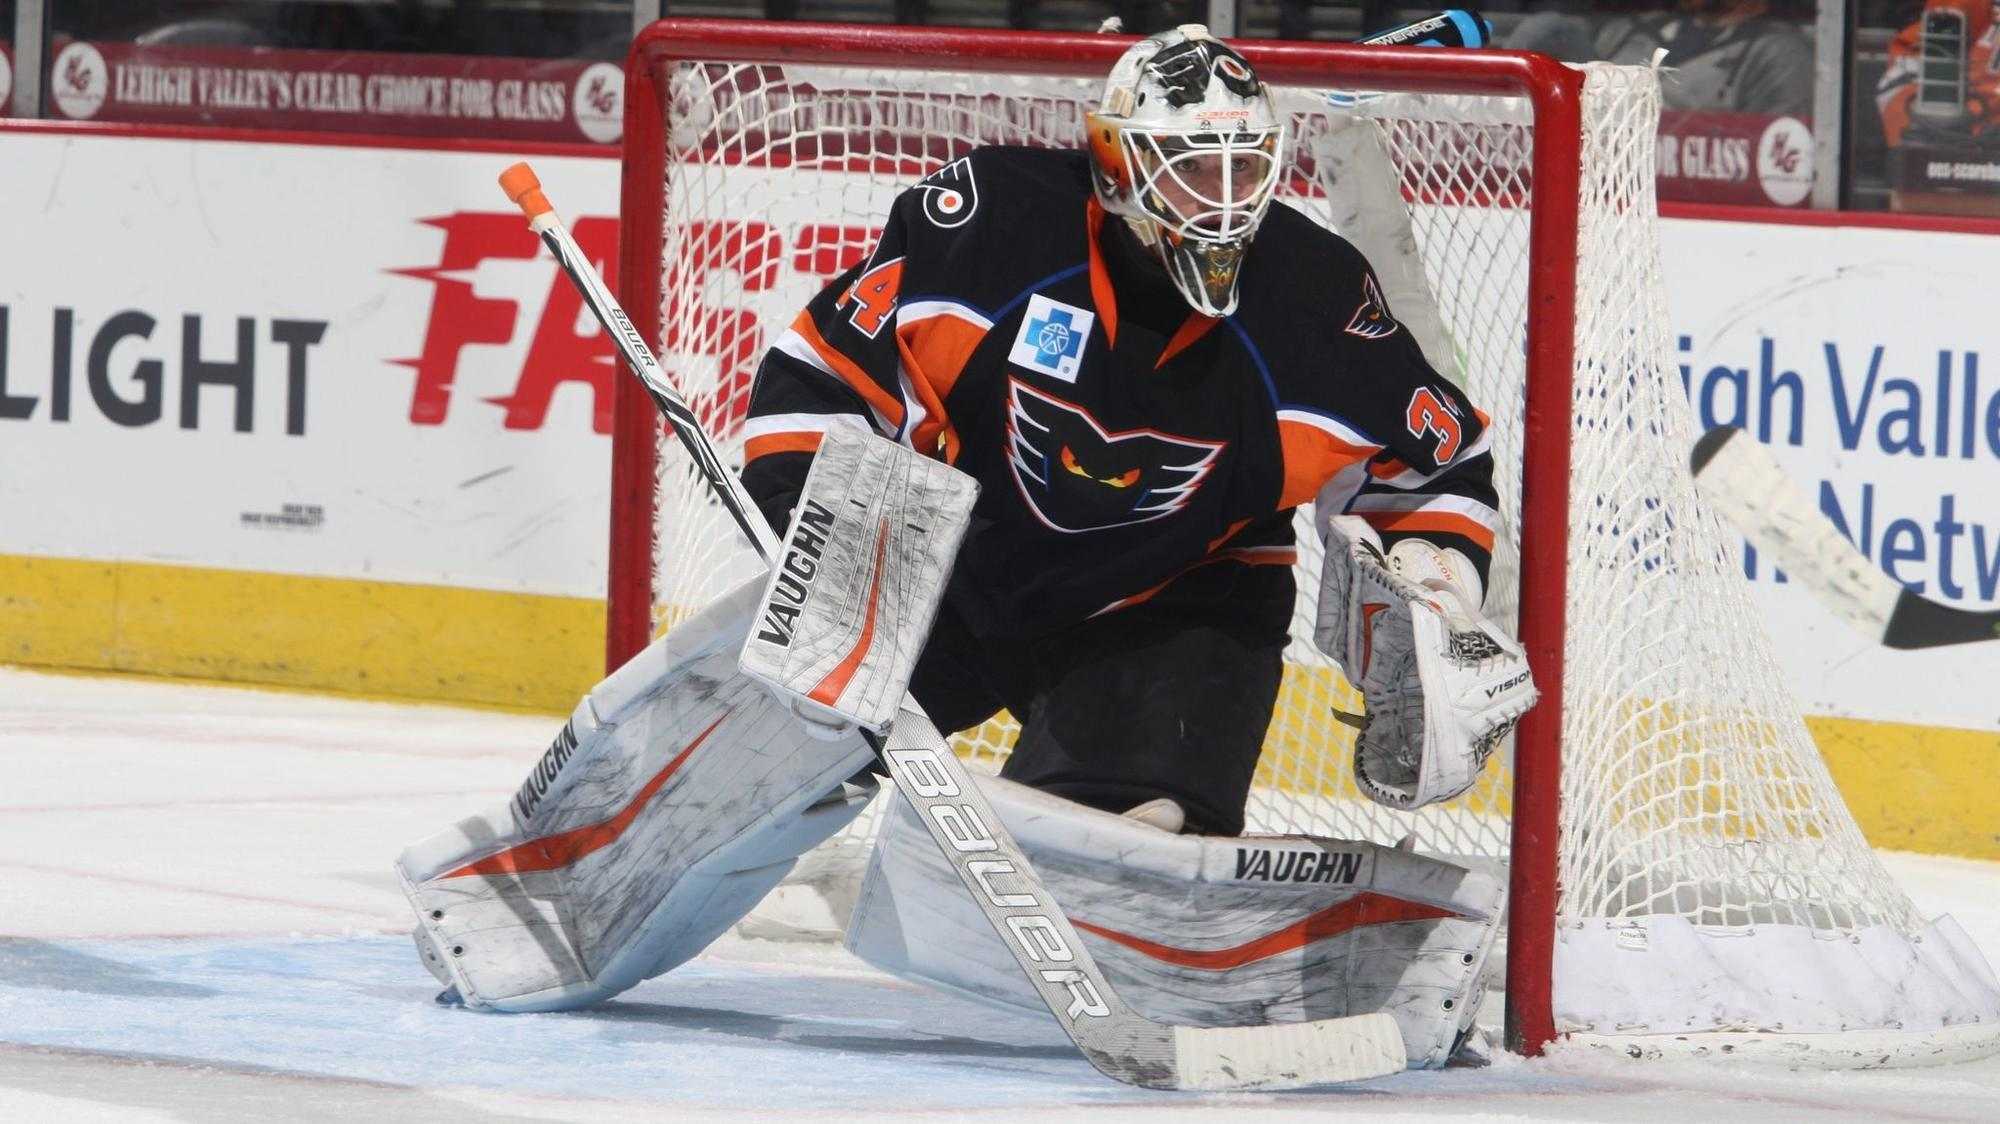 phantoms top bruins move up in atlantic divsion standings the morning call. Black Bedroom Furniture Sets. Home Design Ideas